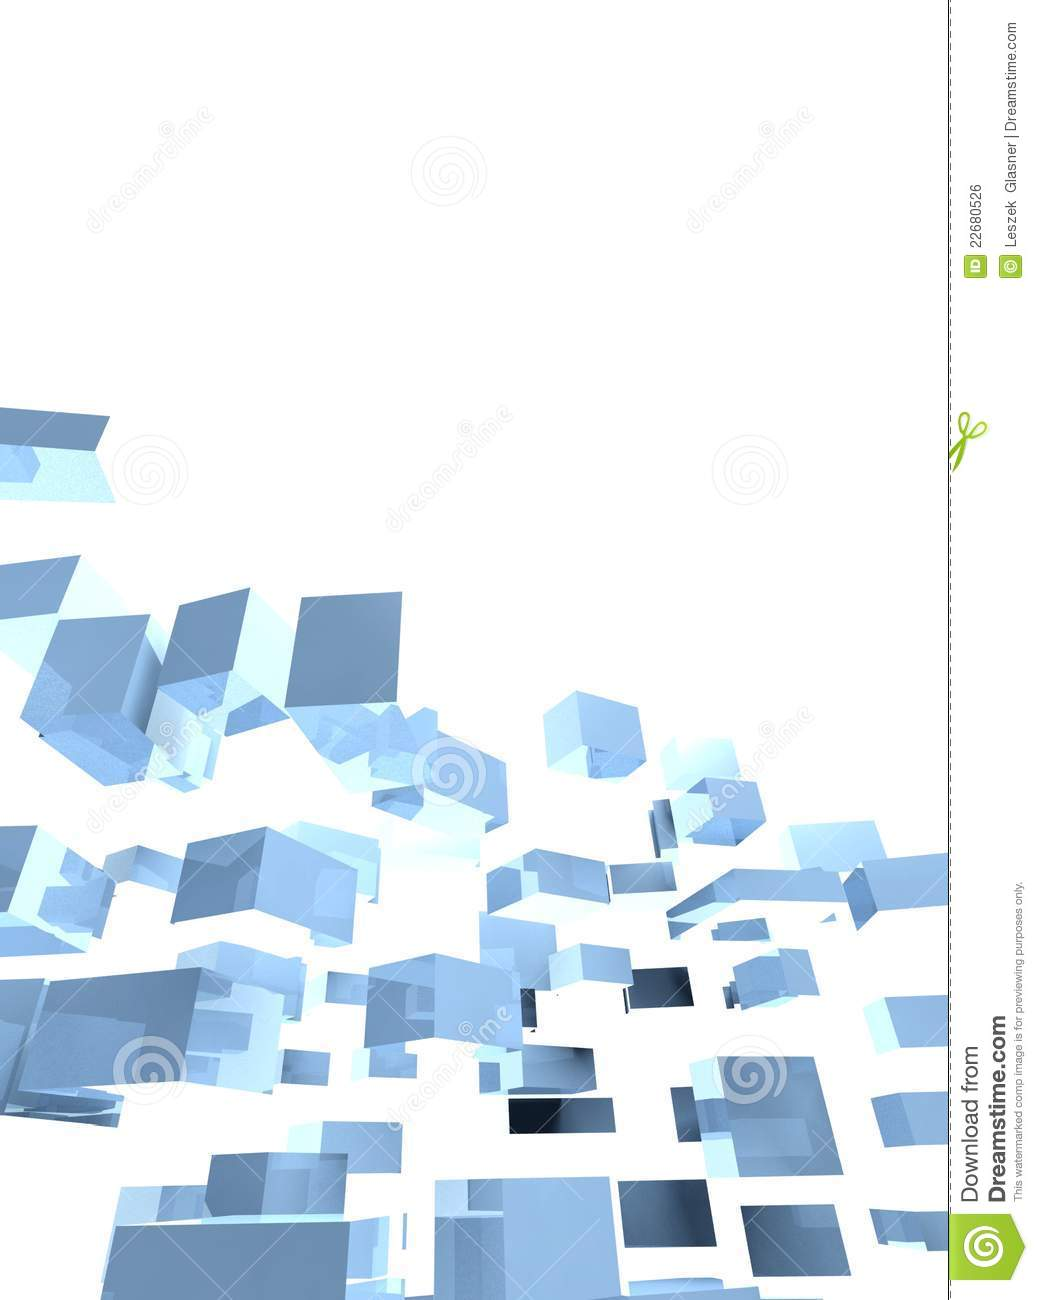 cover design or page background royalty free stock image